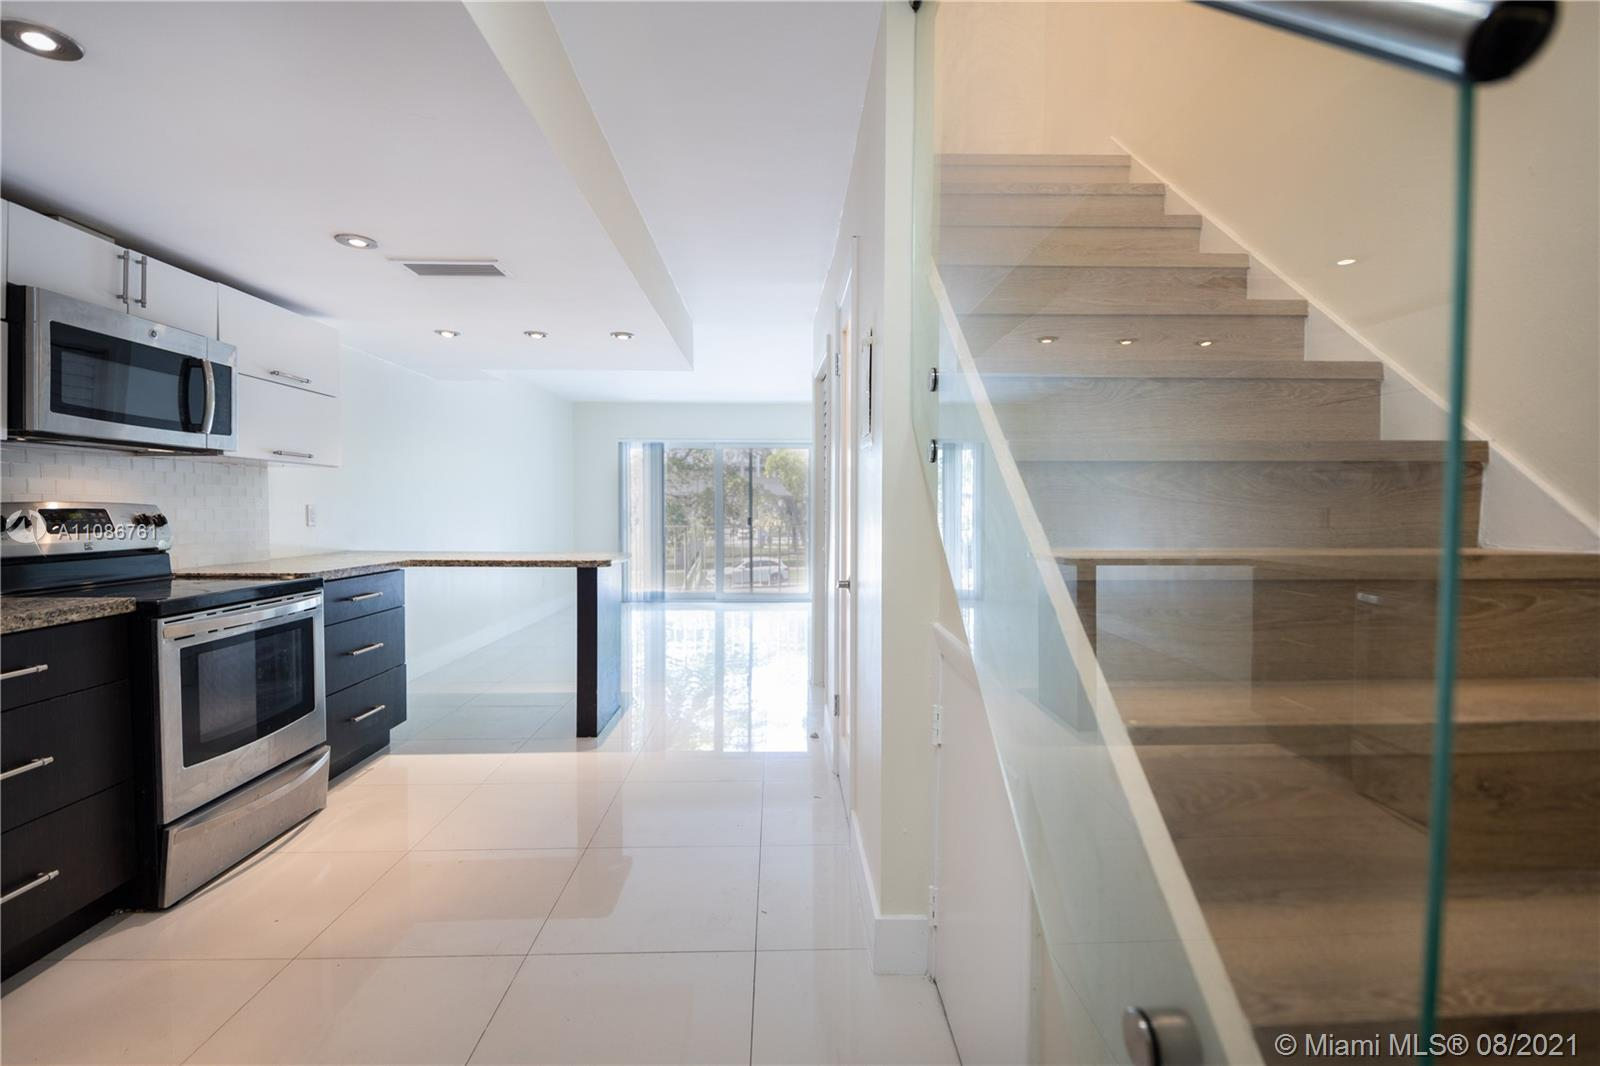 Completely updated 2 bedroom 2 story townhome located in the heart of Coconut Grove. This unit welcomes you with an open kitchen, modern tile floor, stainless steel appliances, dishwasher, garbage disposal, washer & dryer, 1/2 Bath, and spacious balcony. Enjoy the custom glass railings, custom wood stairs Both bedrooms located upstairs with master room having balcony access each. The fullpath separates both rooms and both closet. Building offers hurricane impact windows & state of the art security cameras. Apartment has 2 assigned parking spot and also offers street parking for guests. Minutes away from Cocowalk, University of Miami, Coral Gables, Brickell, Sunset Mall and much more!